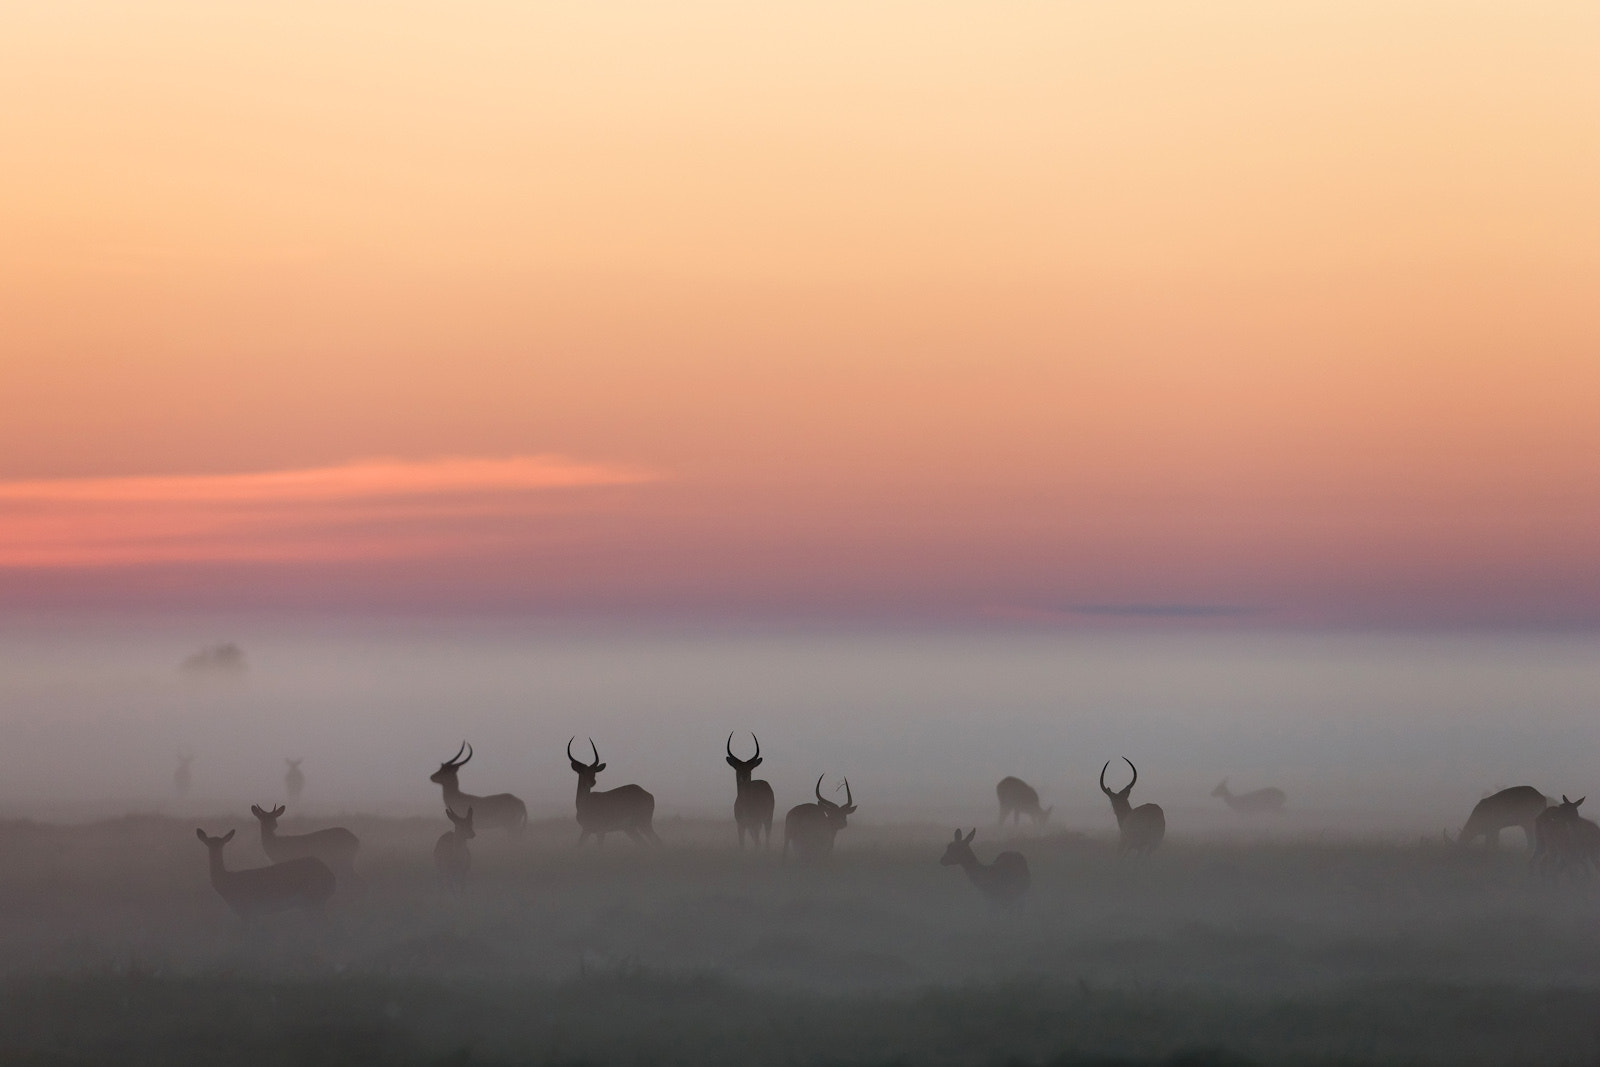 Photograph Morning Mist by Michael Poliza on 500px